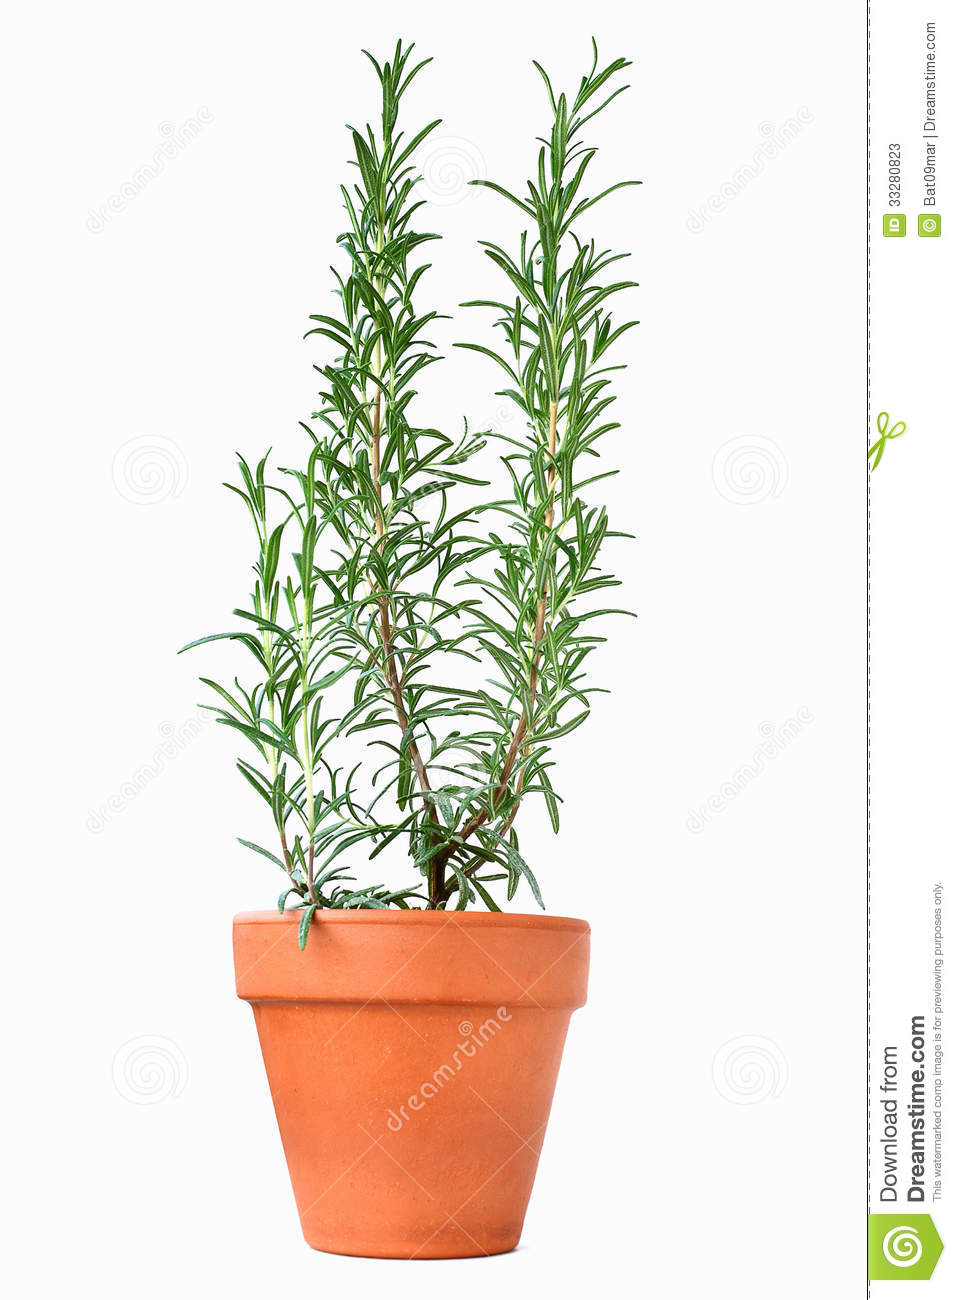 Potted Rosemary Plant Stock Photos - Image: 33280823